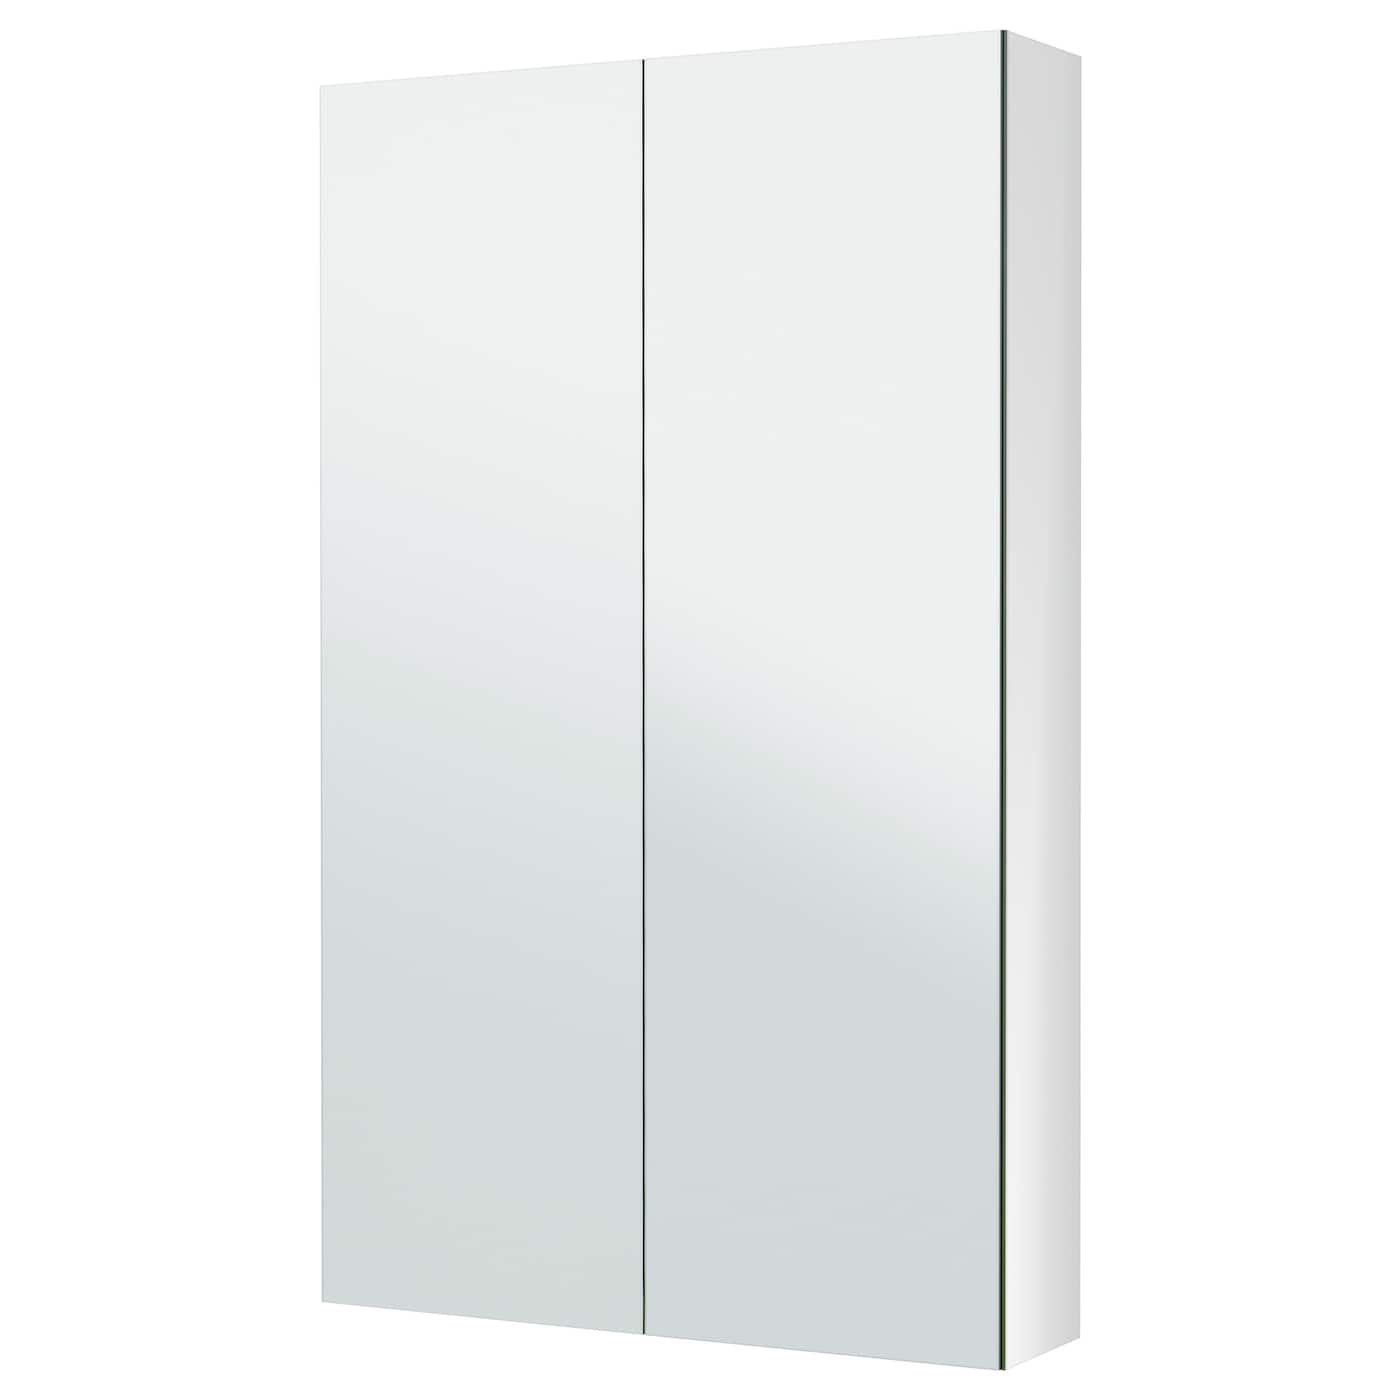 ikea godmorgon mirror cabinet with 2 doors mirror both on the outside and the inside